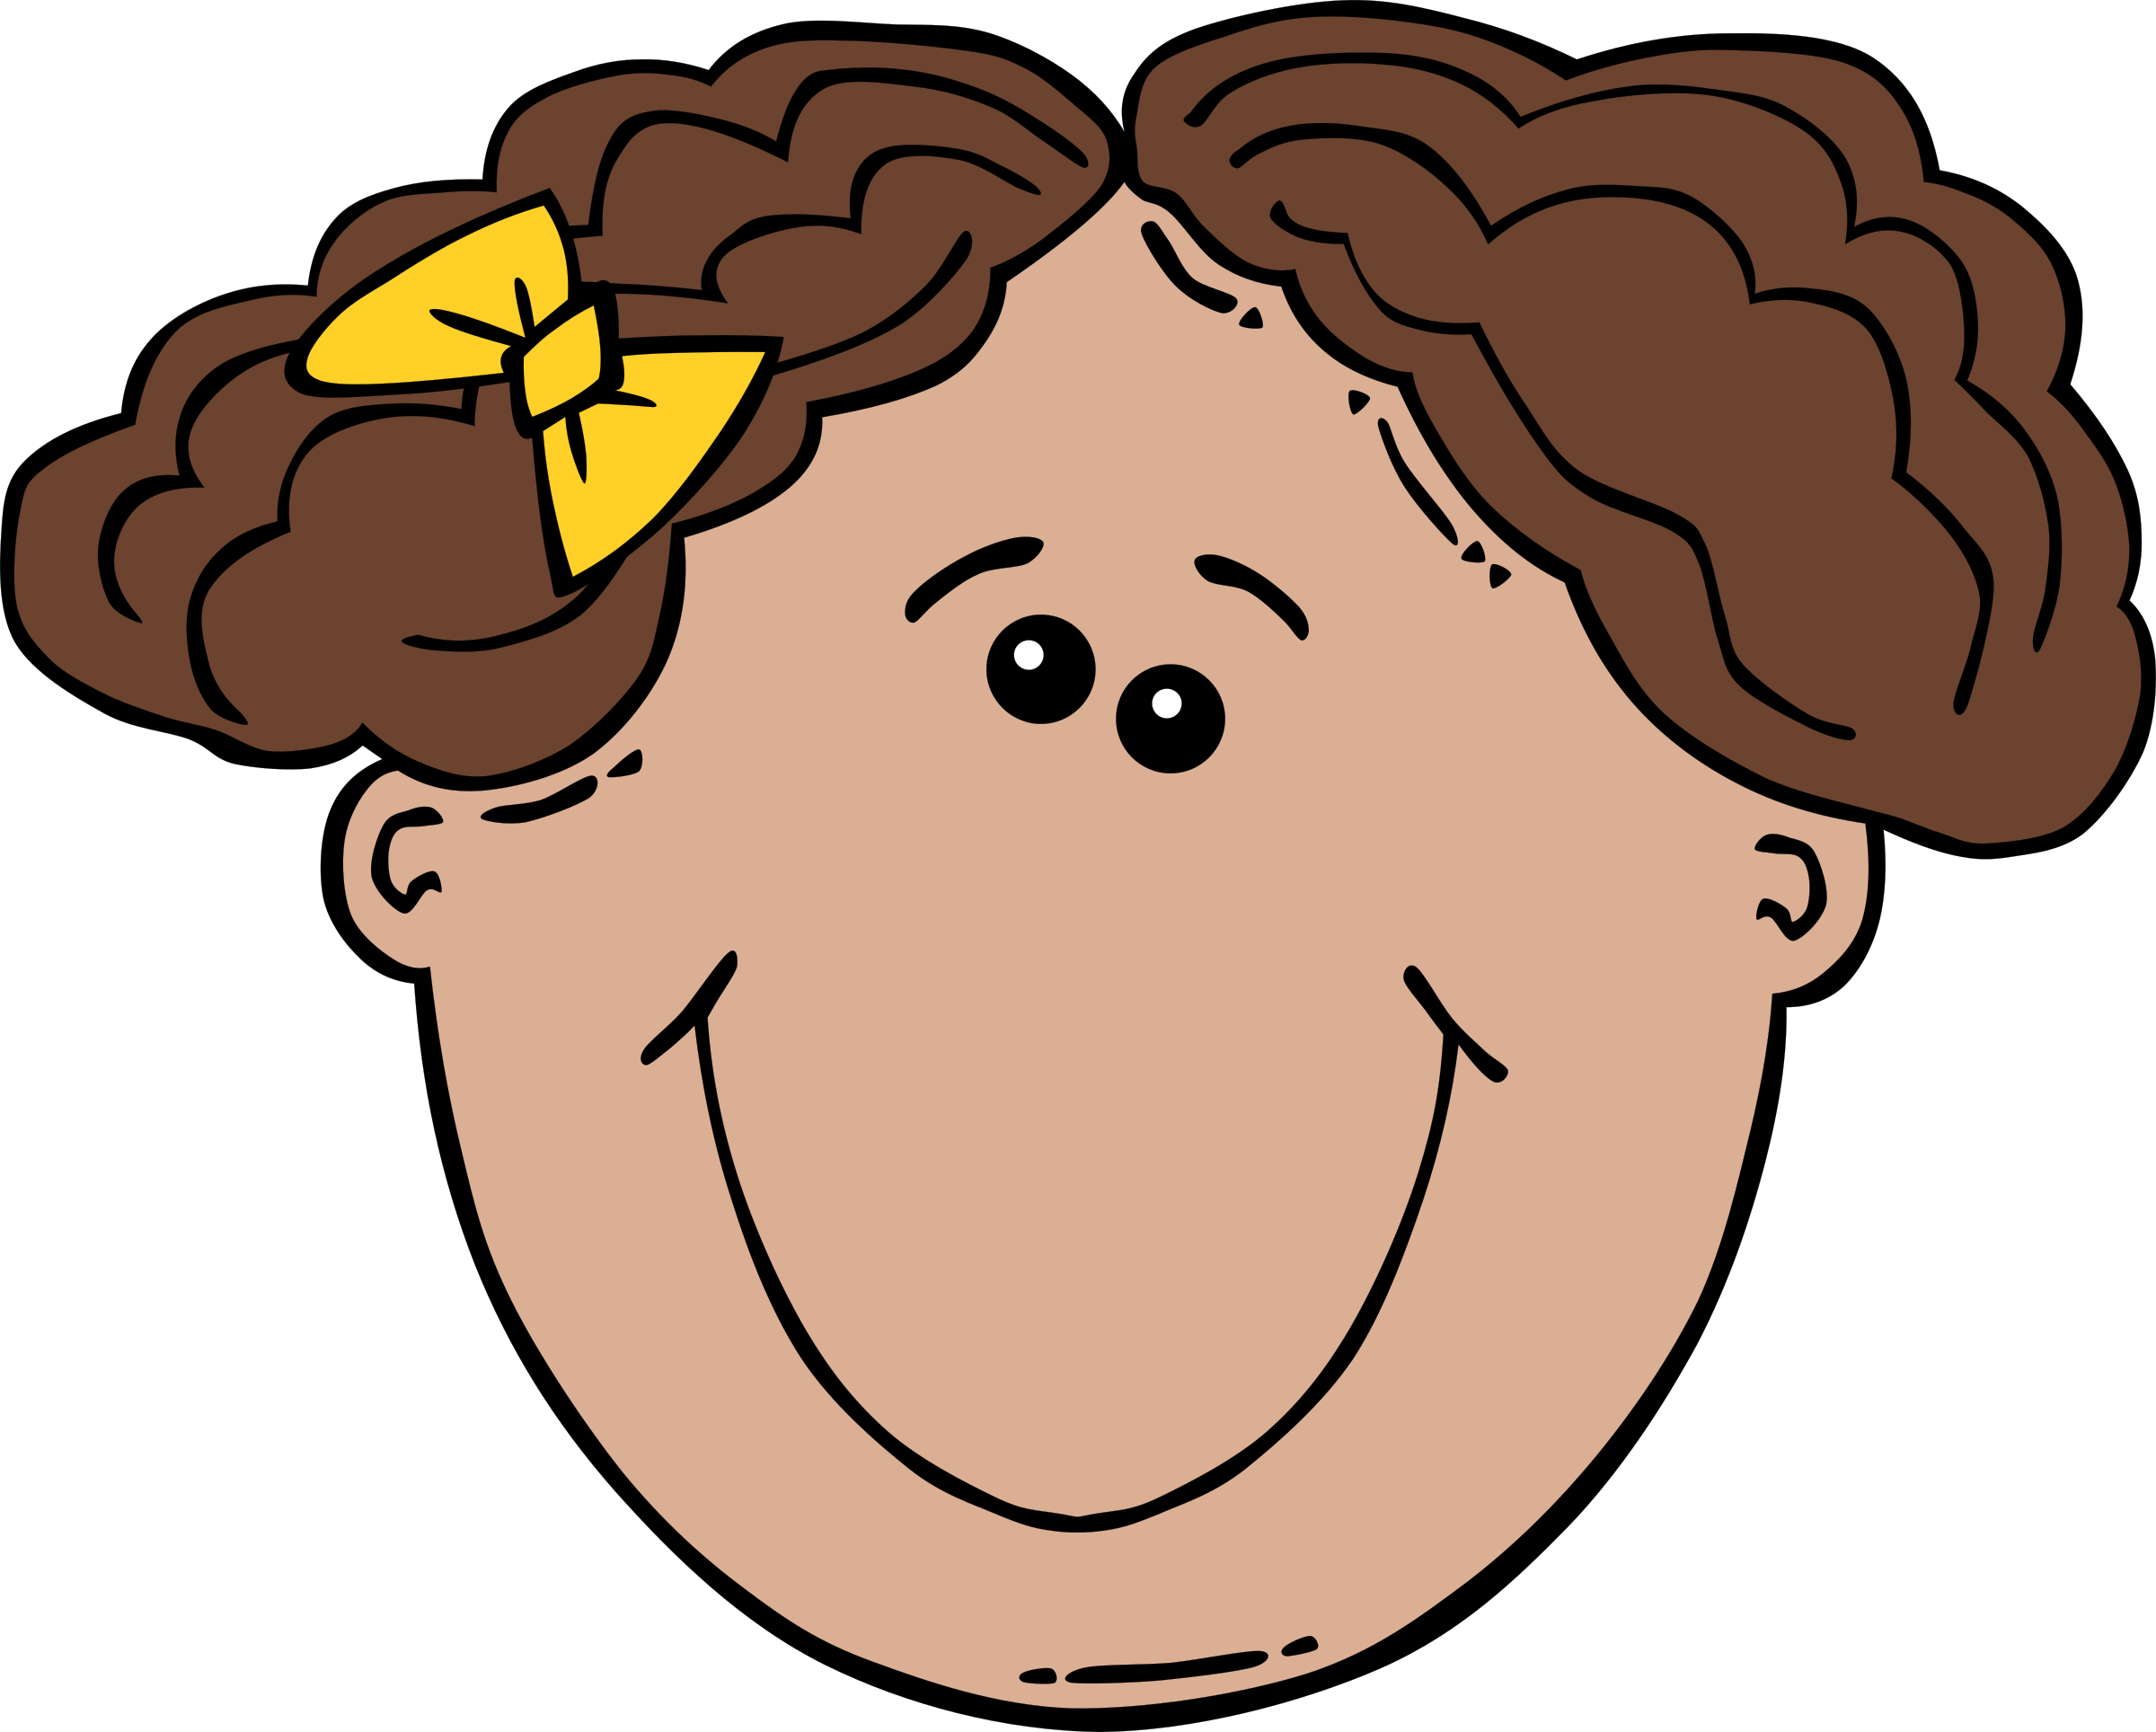 Girl pumpkin face clipart picture free library Cartoon Girl Faces Group (62+) picture free library